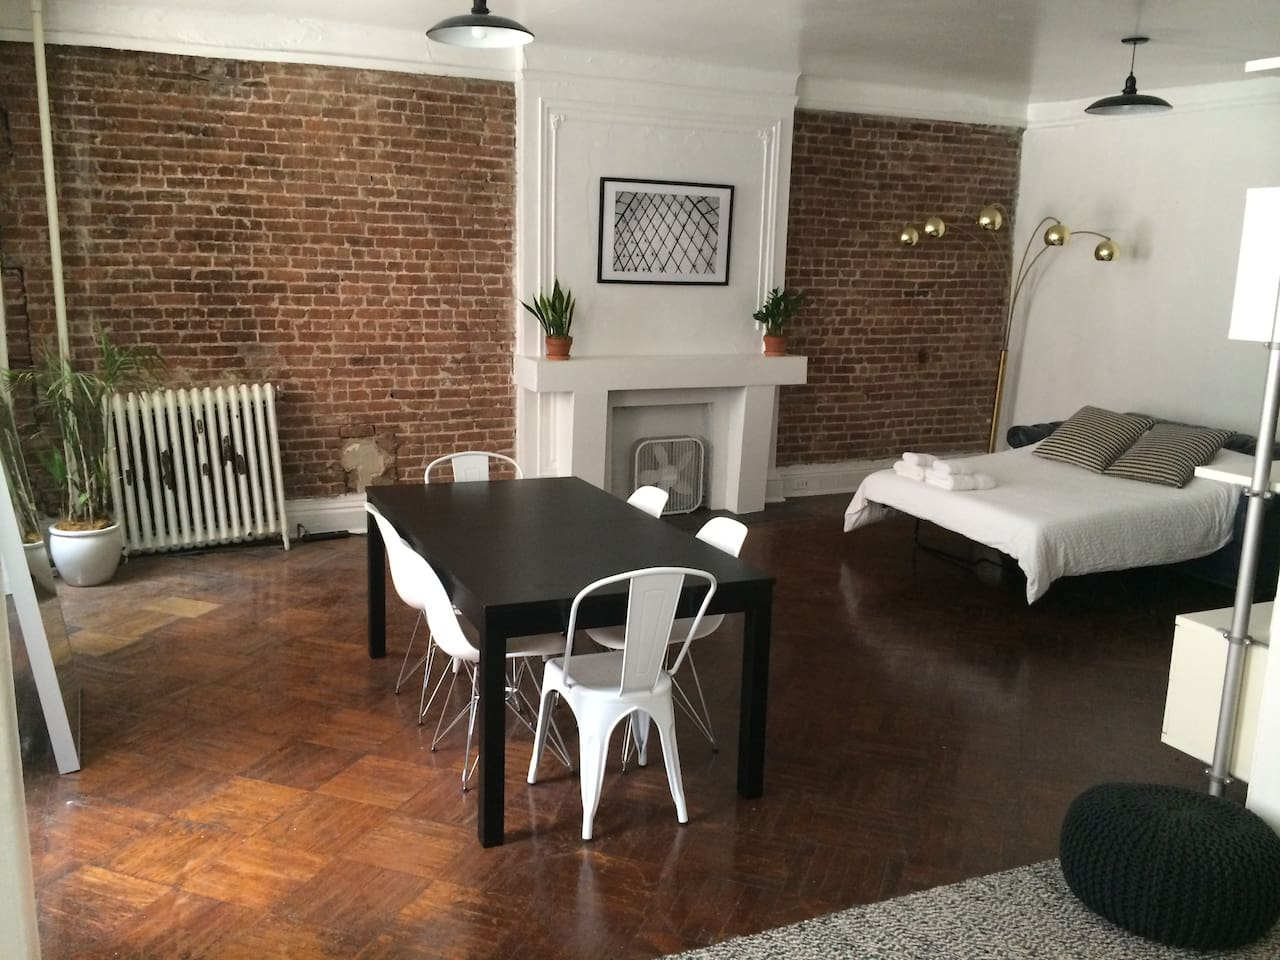 Exposed brick next to the sleeping area, table for planing trip around the city. mini fridge for keeping beverages cold (not pictured)